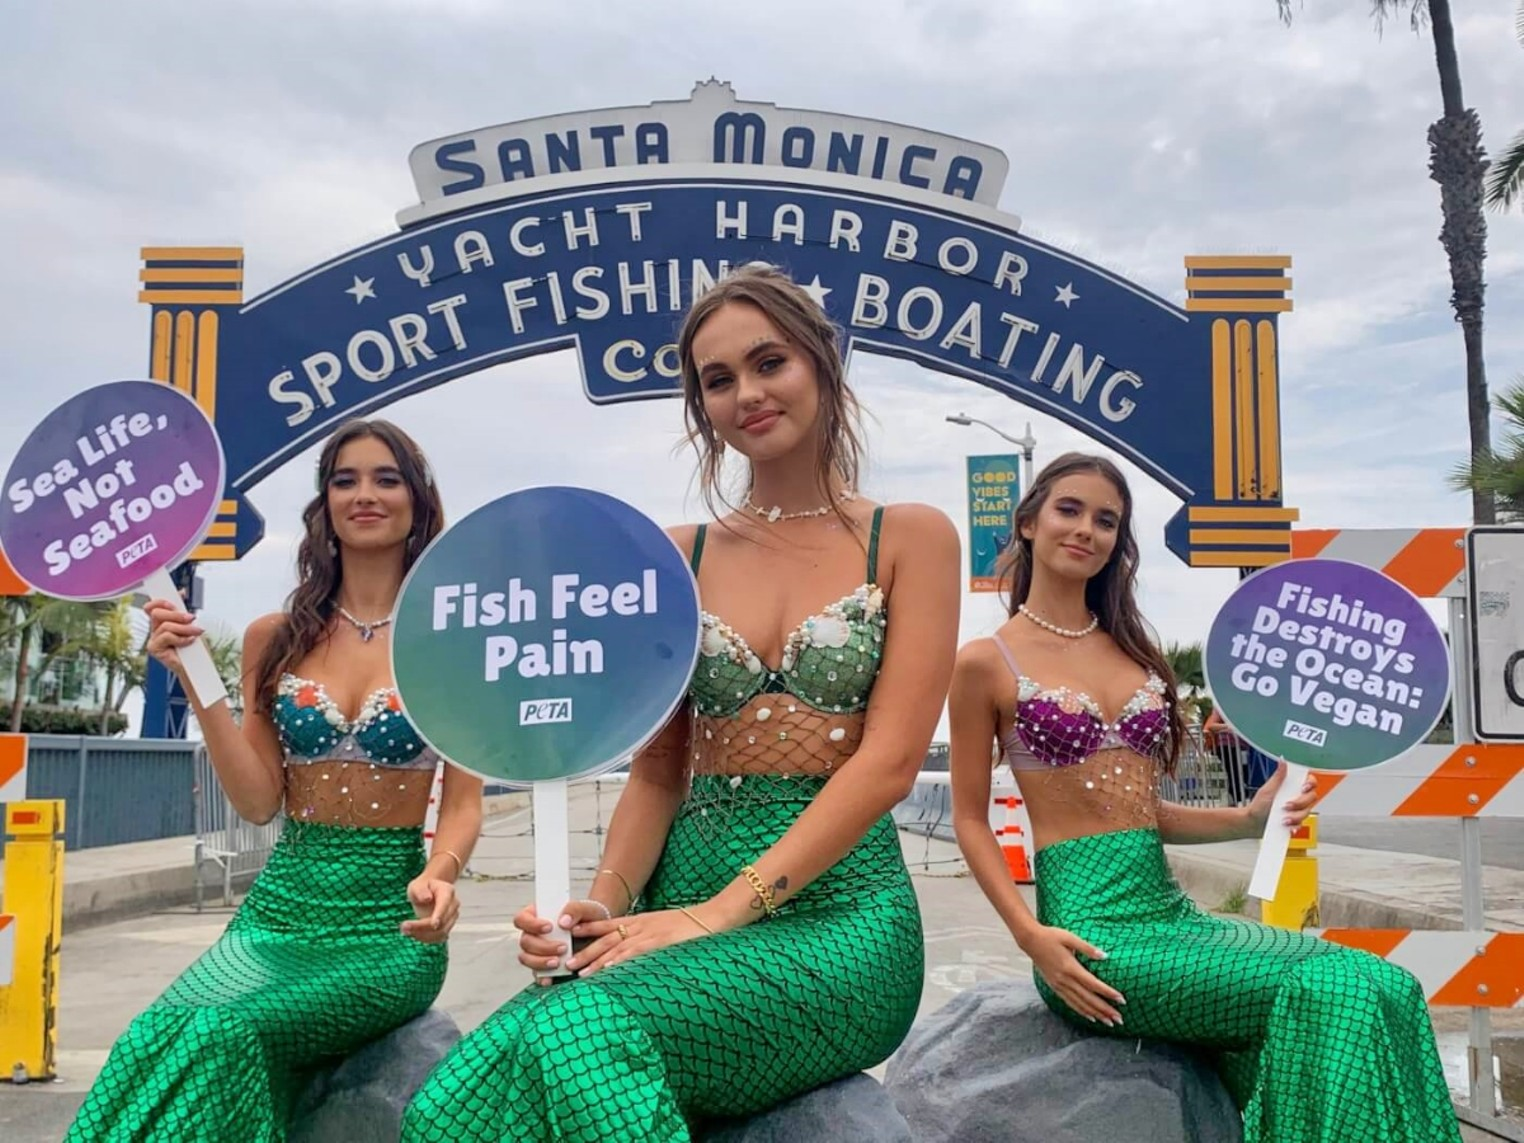 A PETA Mermaid Will Wash Ashore on Fort Lauderdale Beach Today With Free Vegan Crab Cakes